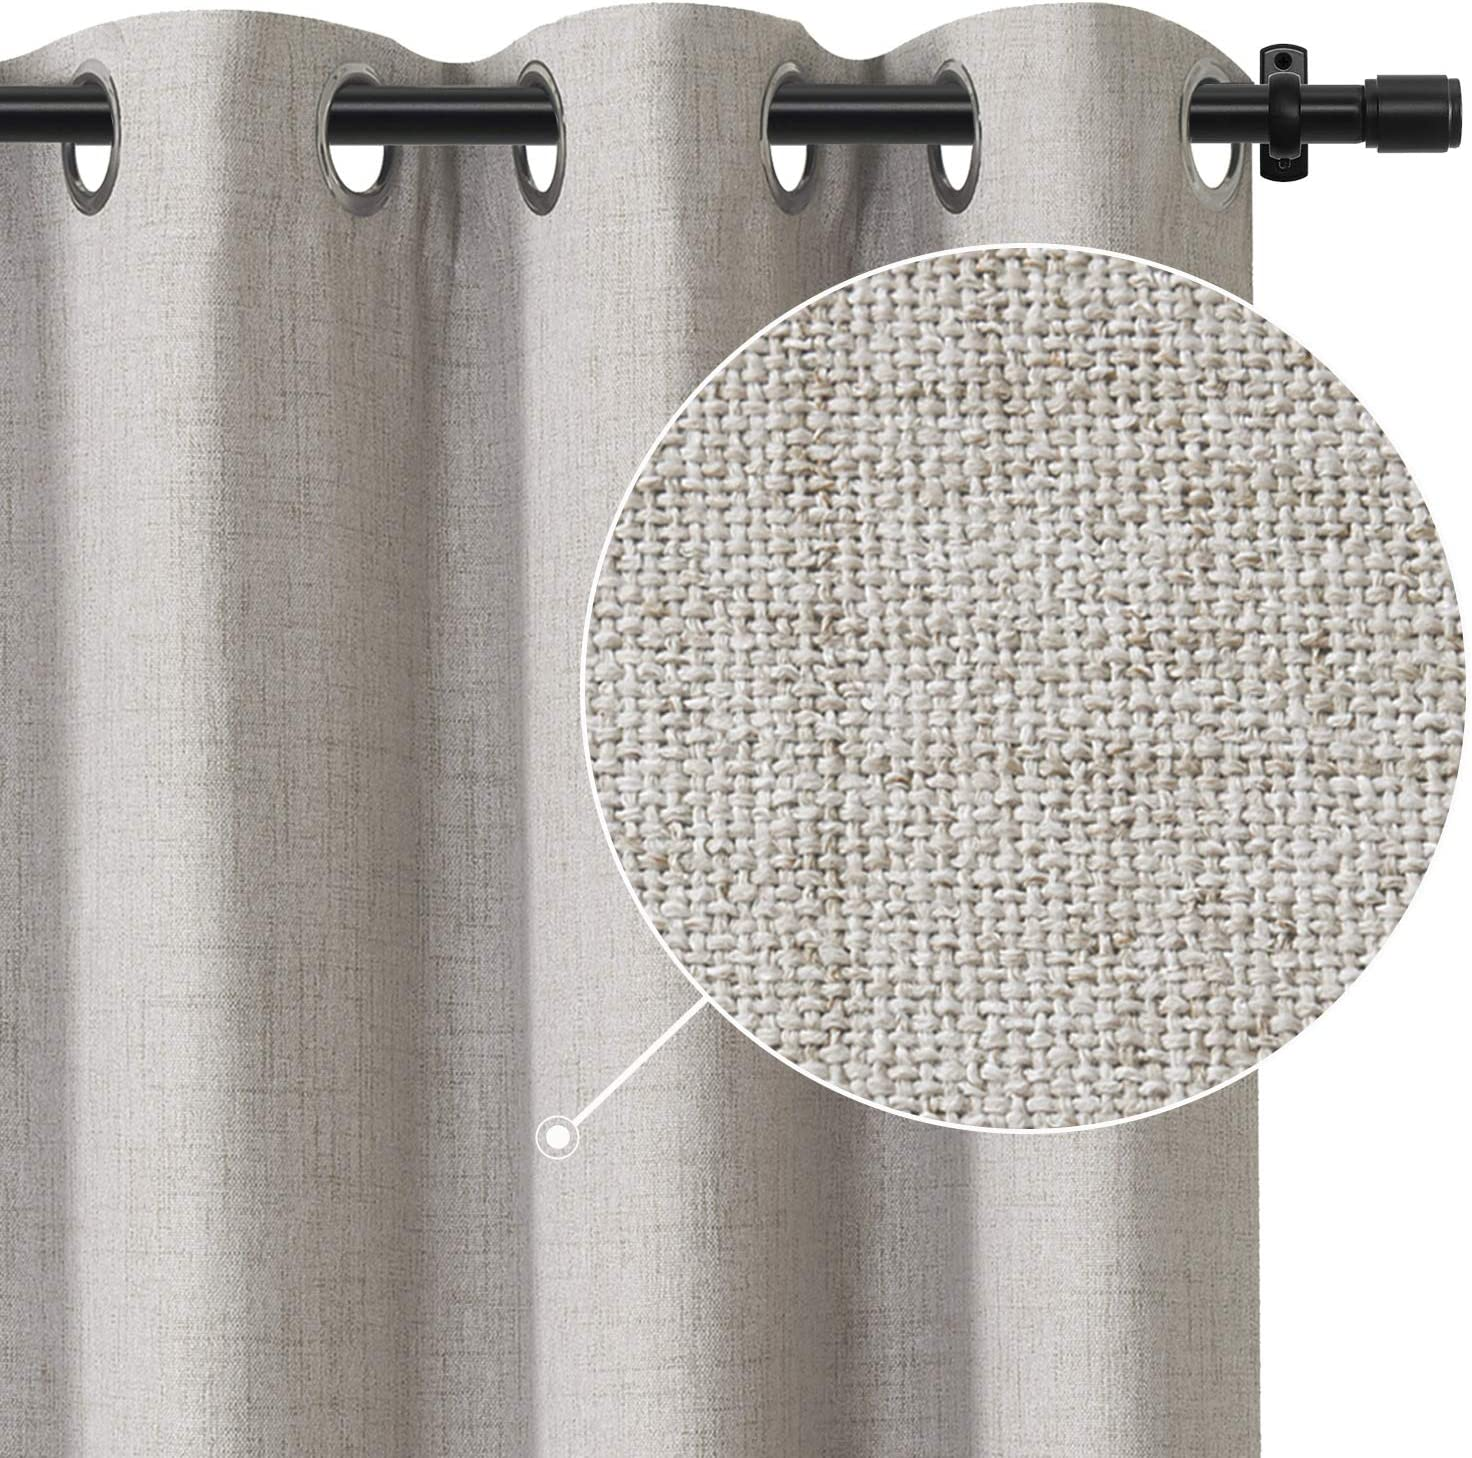 Rose Home Fashion 100% Blackout Curtains, Linen Textured Room Darkening Darpes& Thermal Insulated Liner, Blackout Curtains for Bedroom/Living Room-1 Panel (50x63 Beige)